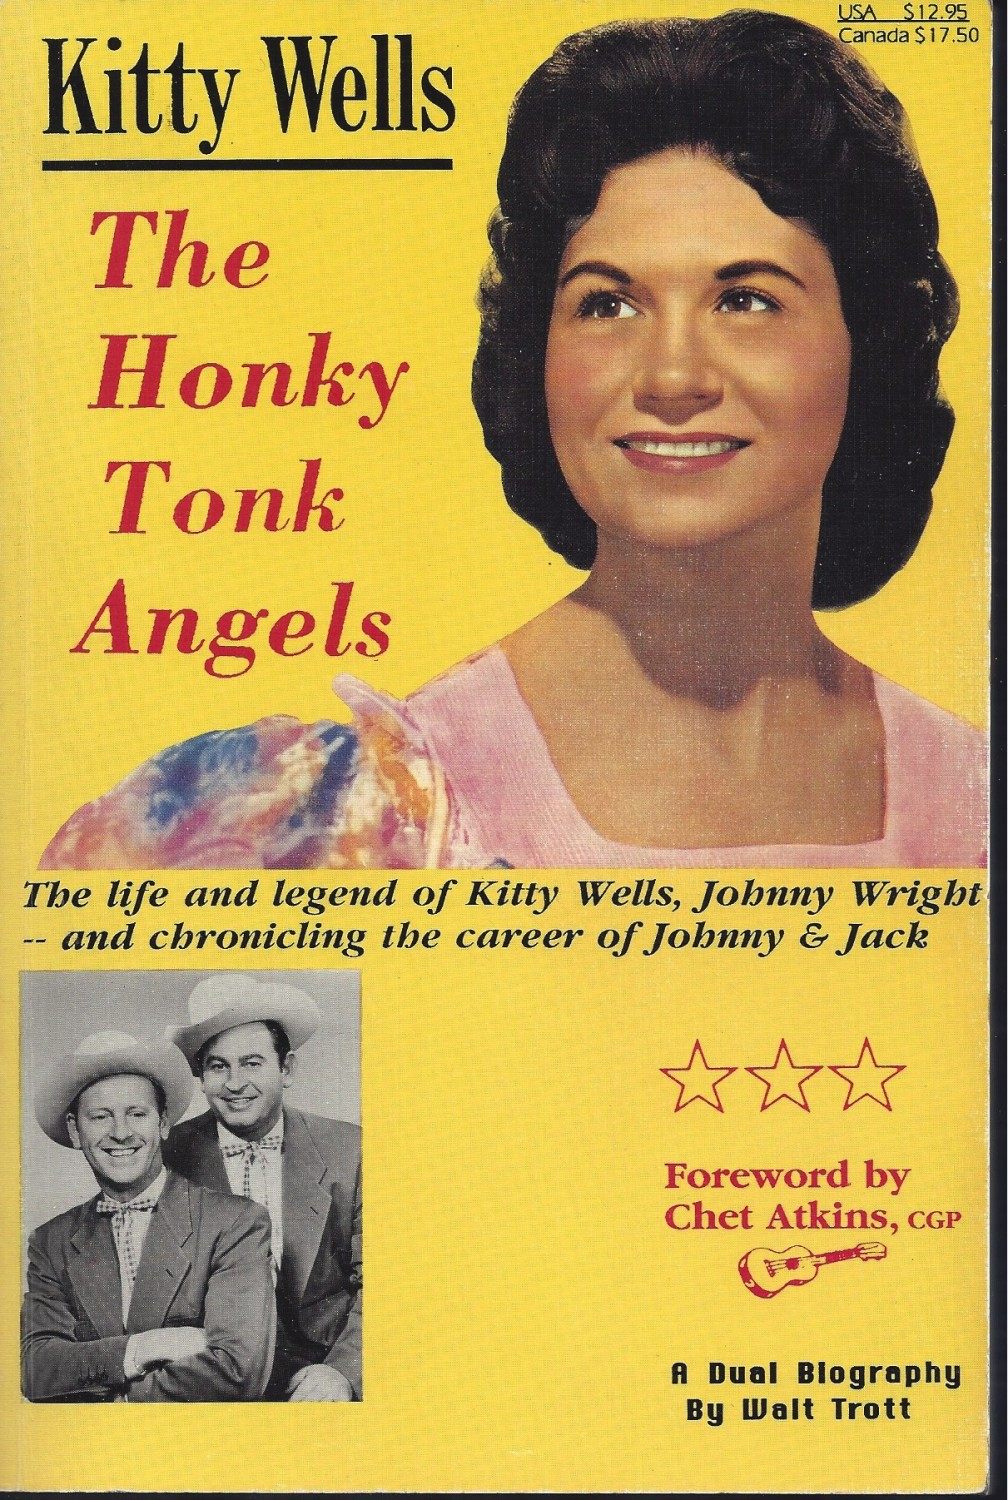 the-honky-tonk-anges